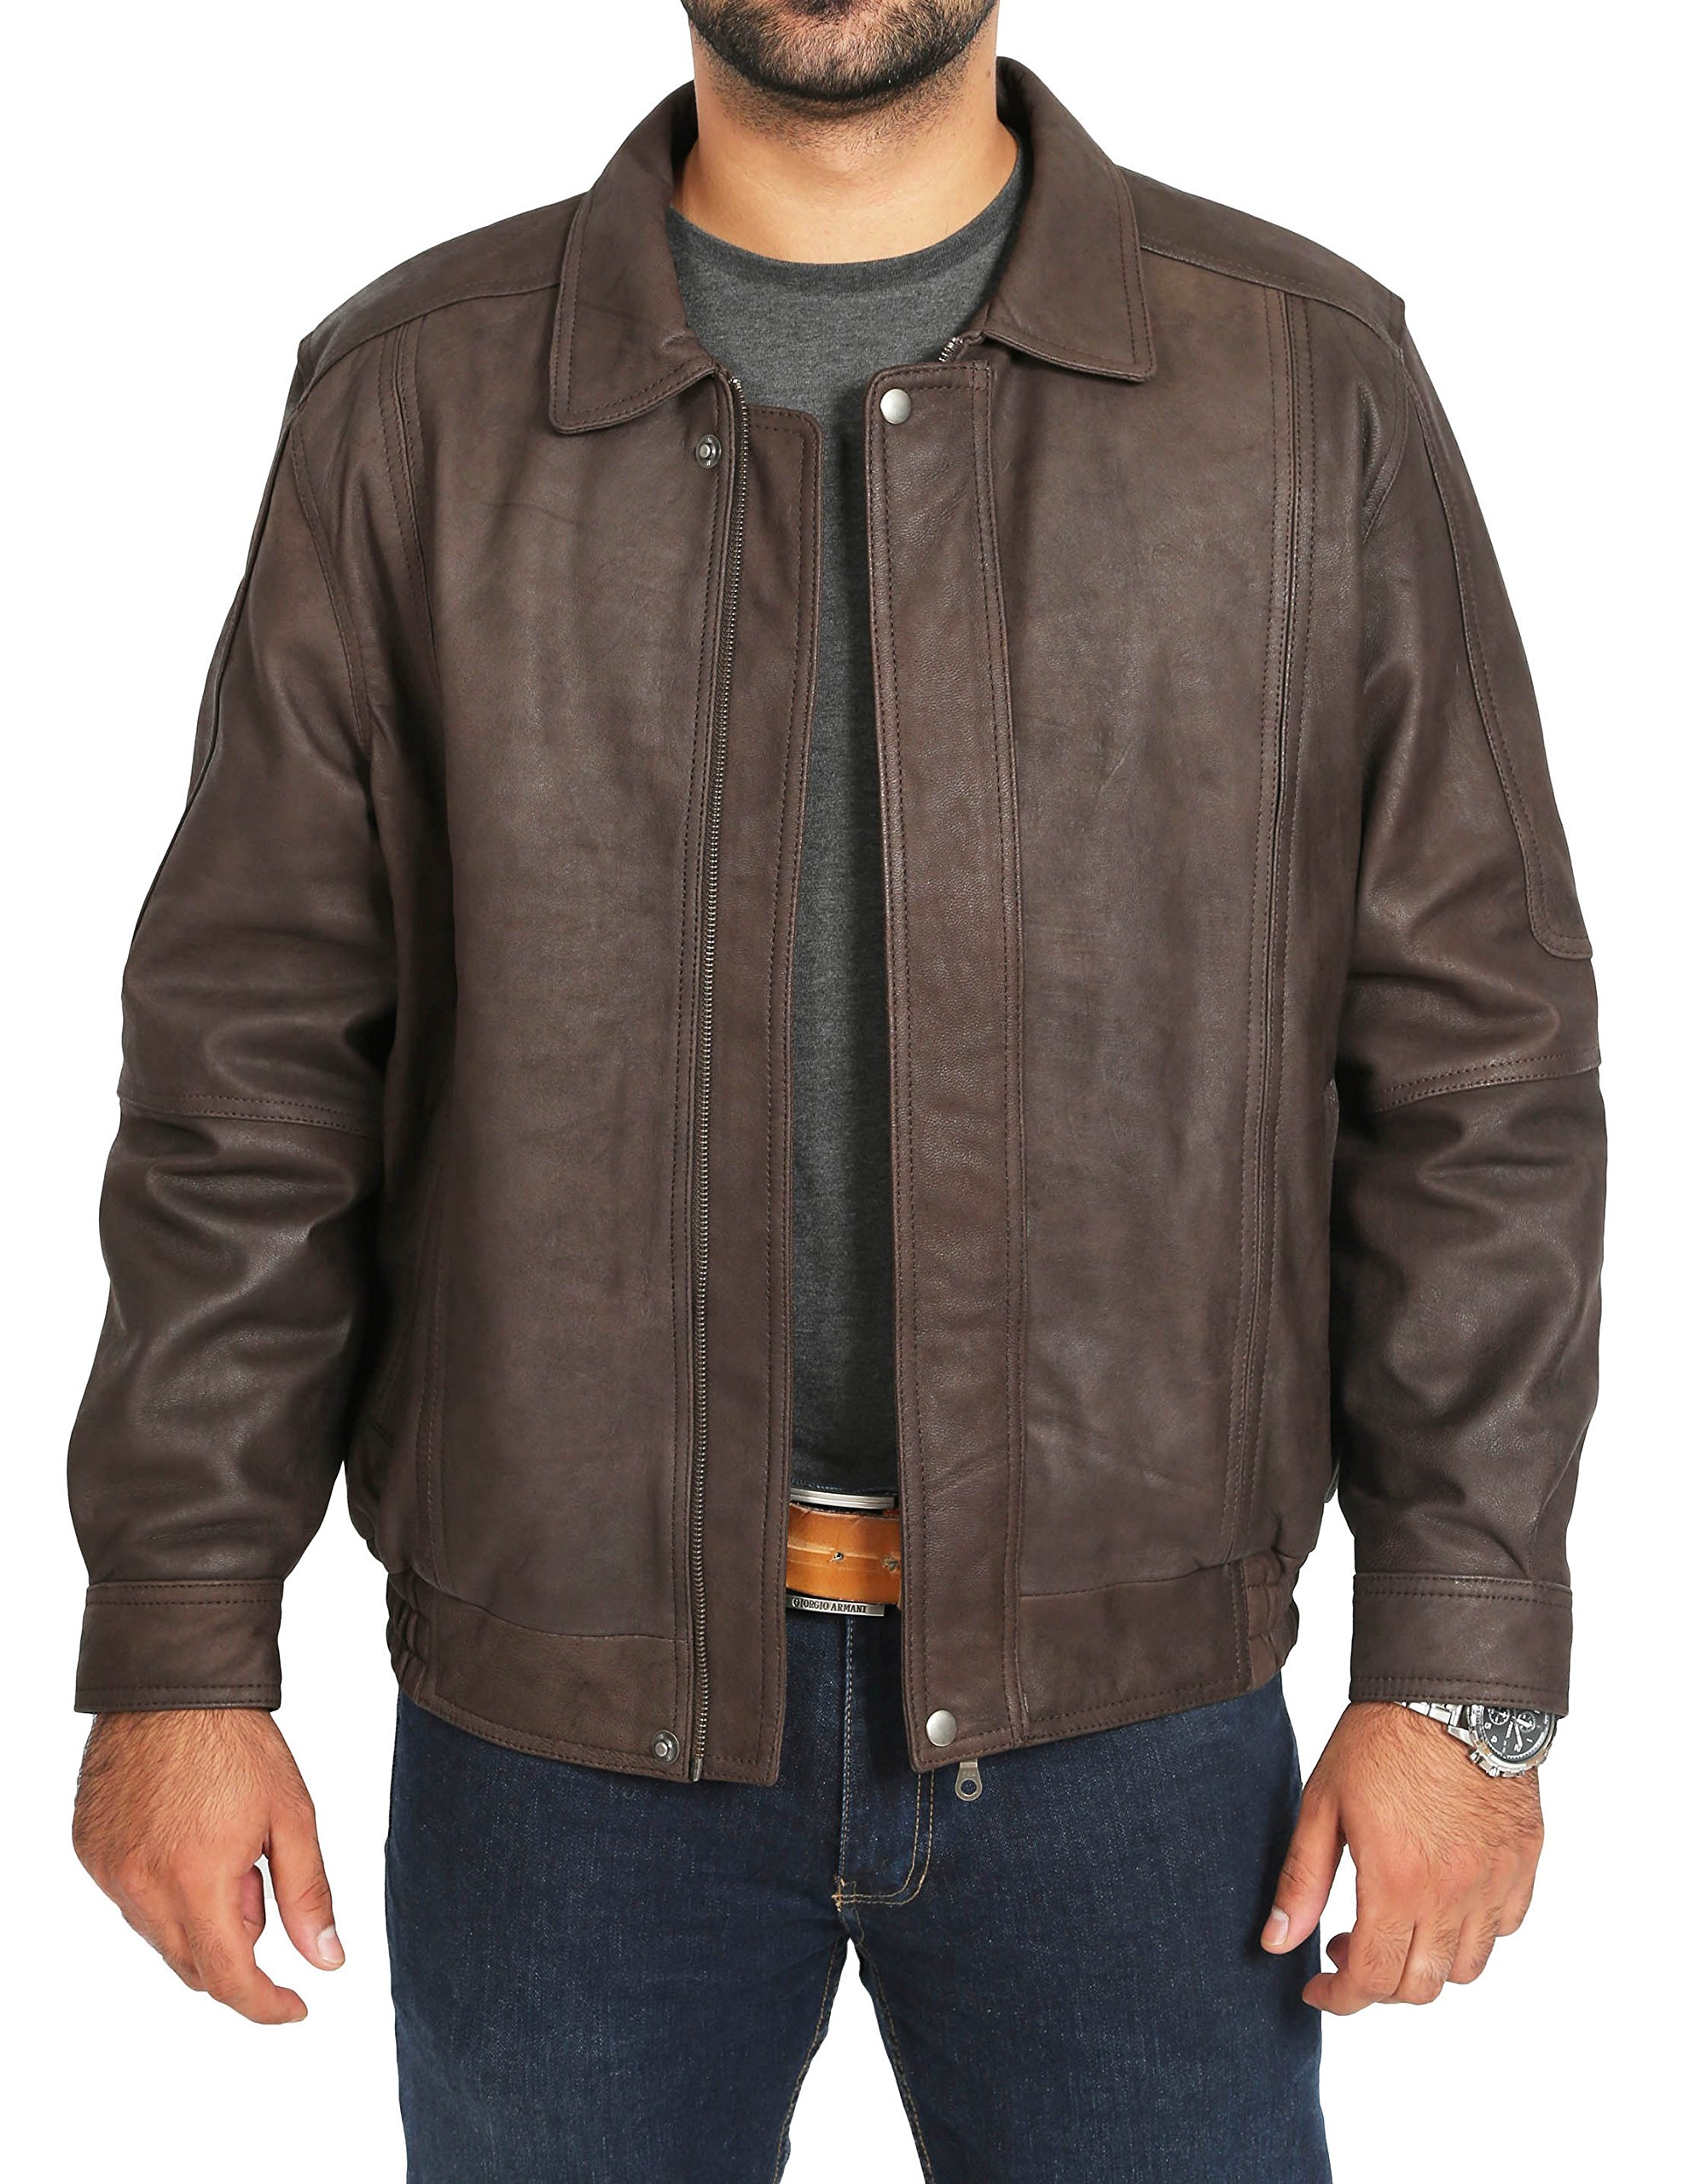 Mens Soft Brown Nubuck Bomber Leather Jacket Classic Casual Blouson Coat - Keith (Large) by A1 FASHION GOODS